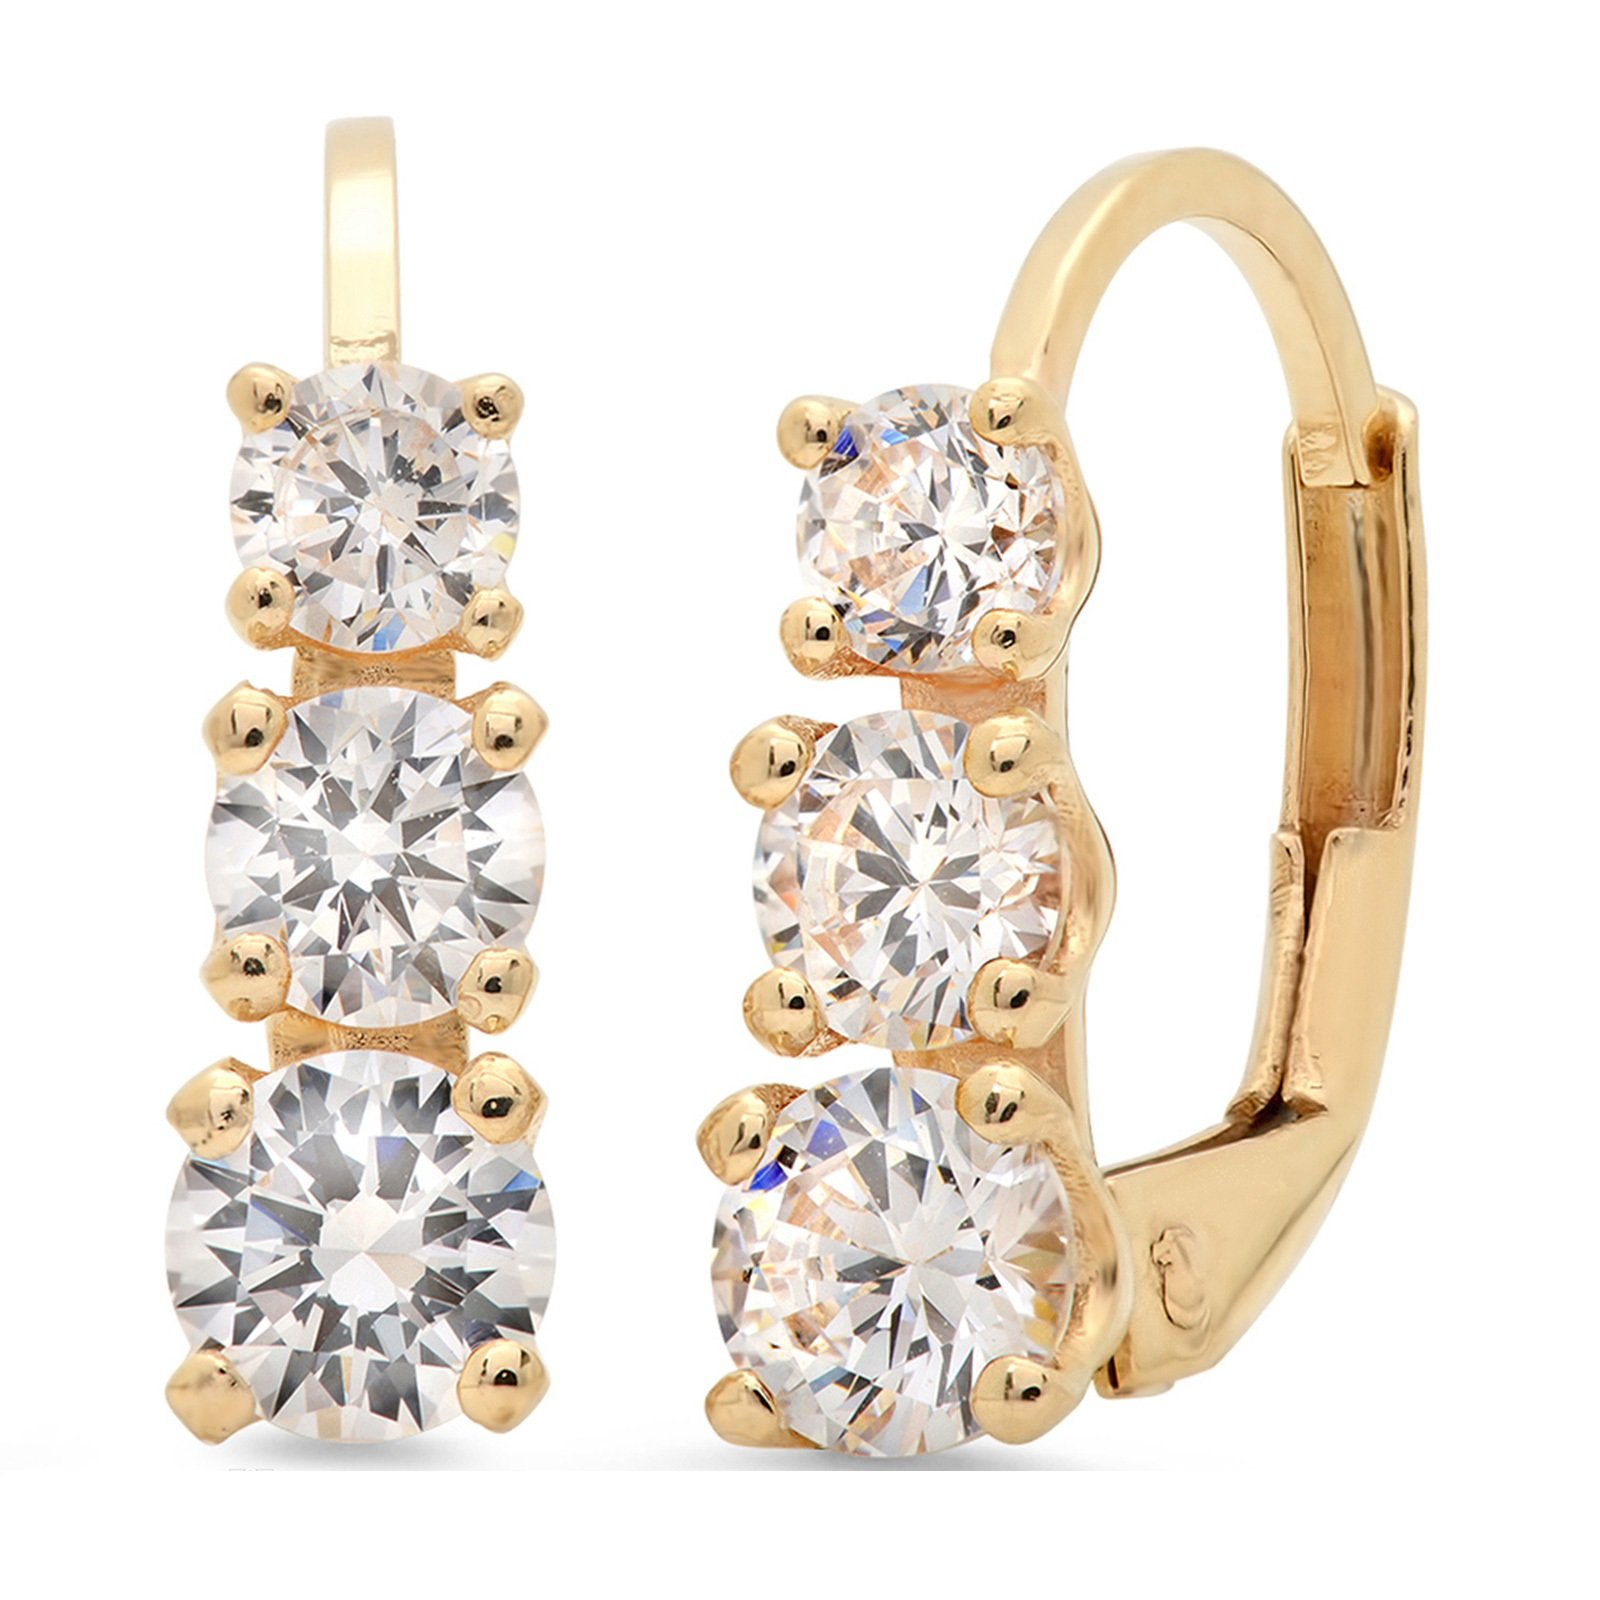 Clara Pucci 2.40 CT 3 Stone ROUND CUT Earrings 14K Yellow Gold Past Present Future Leverback